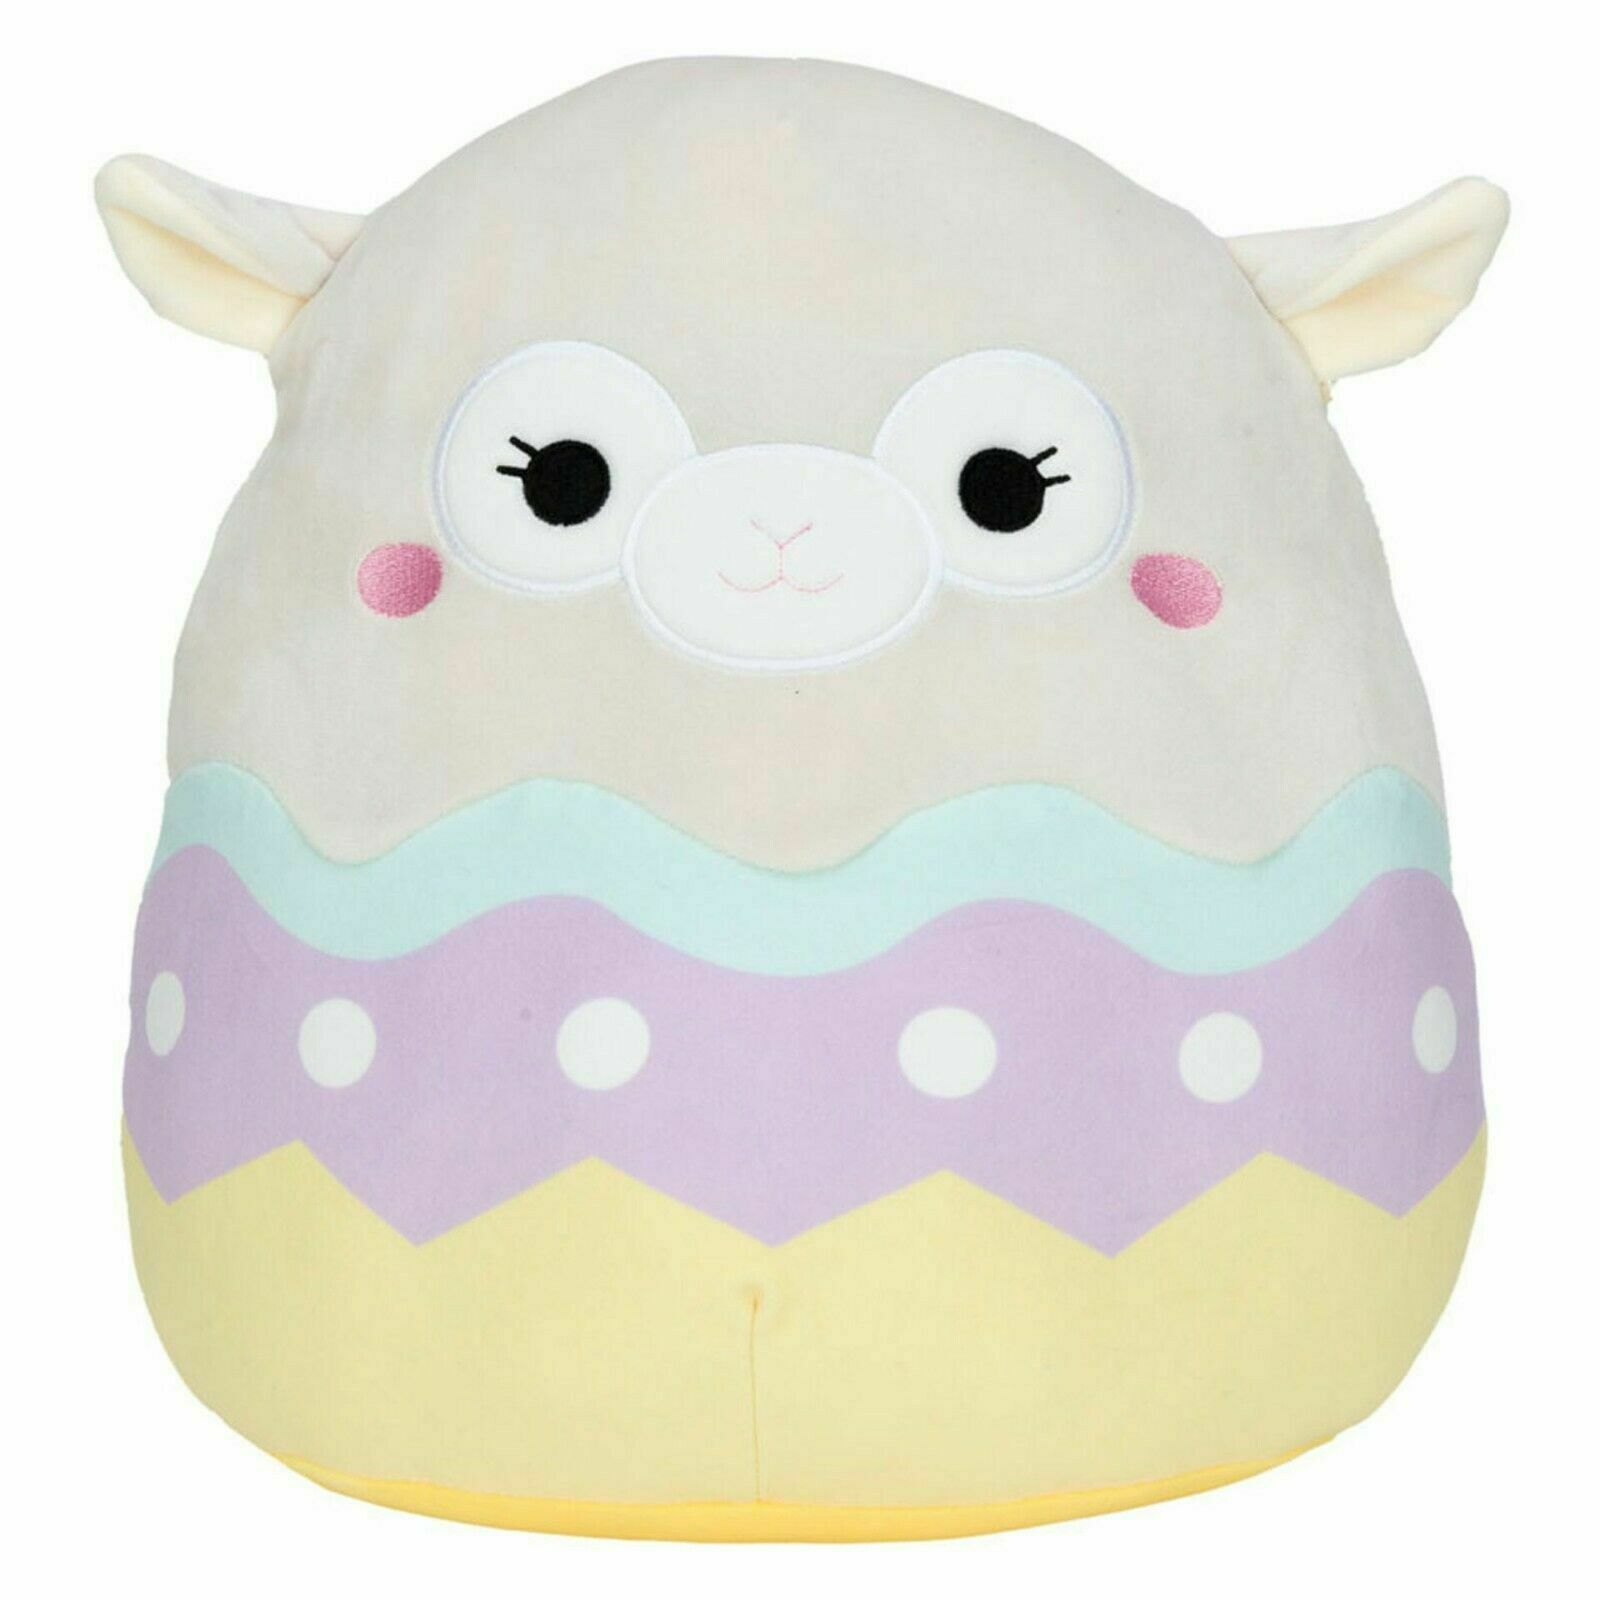 "Squishmallows Mini Leah the Alpaca Stuffed Animal, 16"" - $40.43"